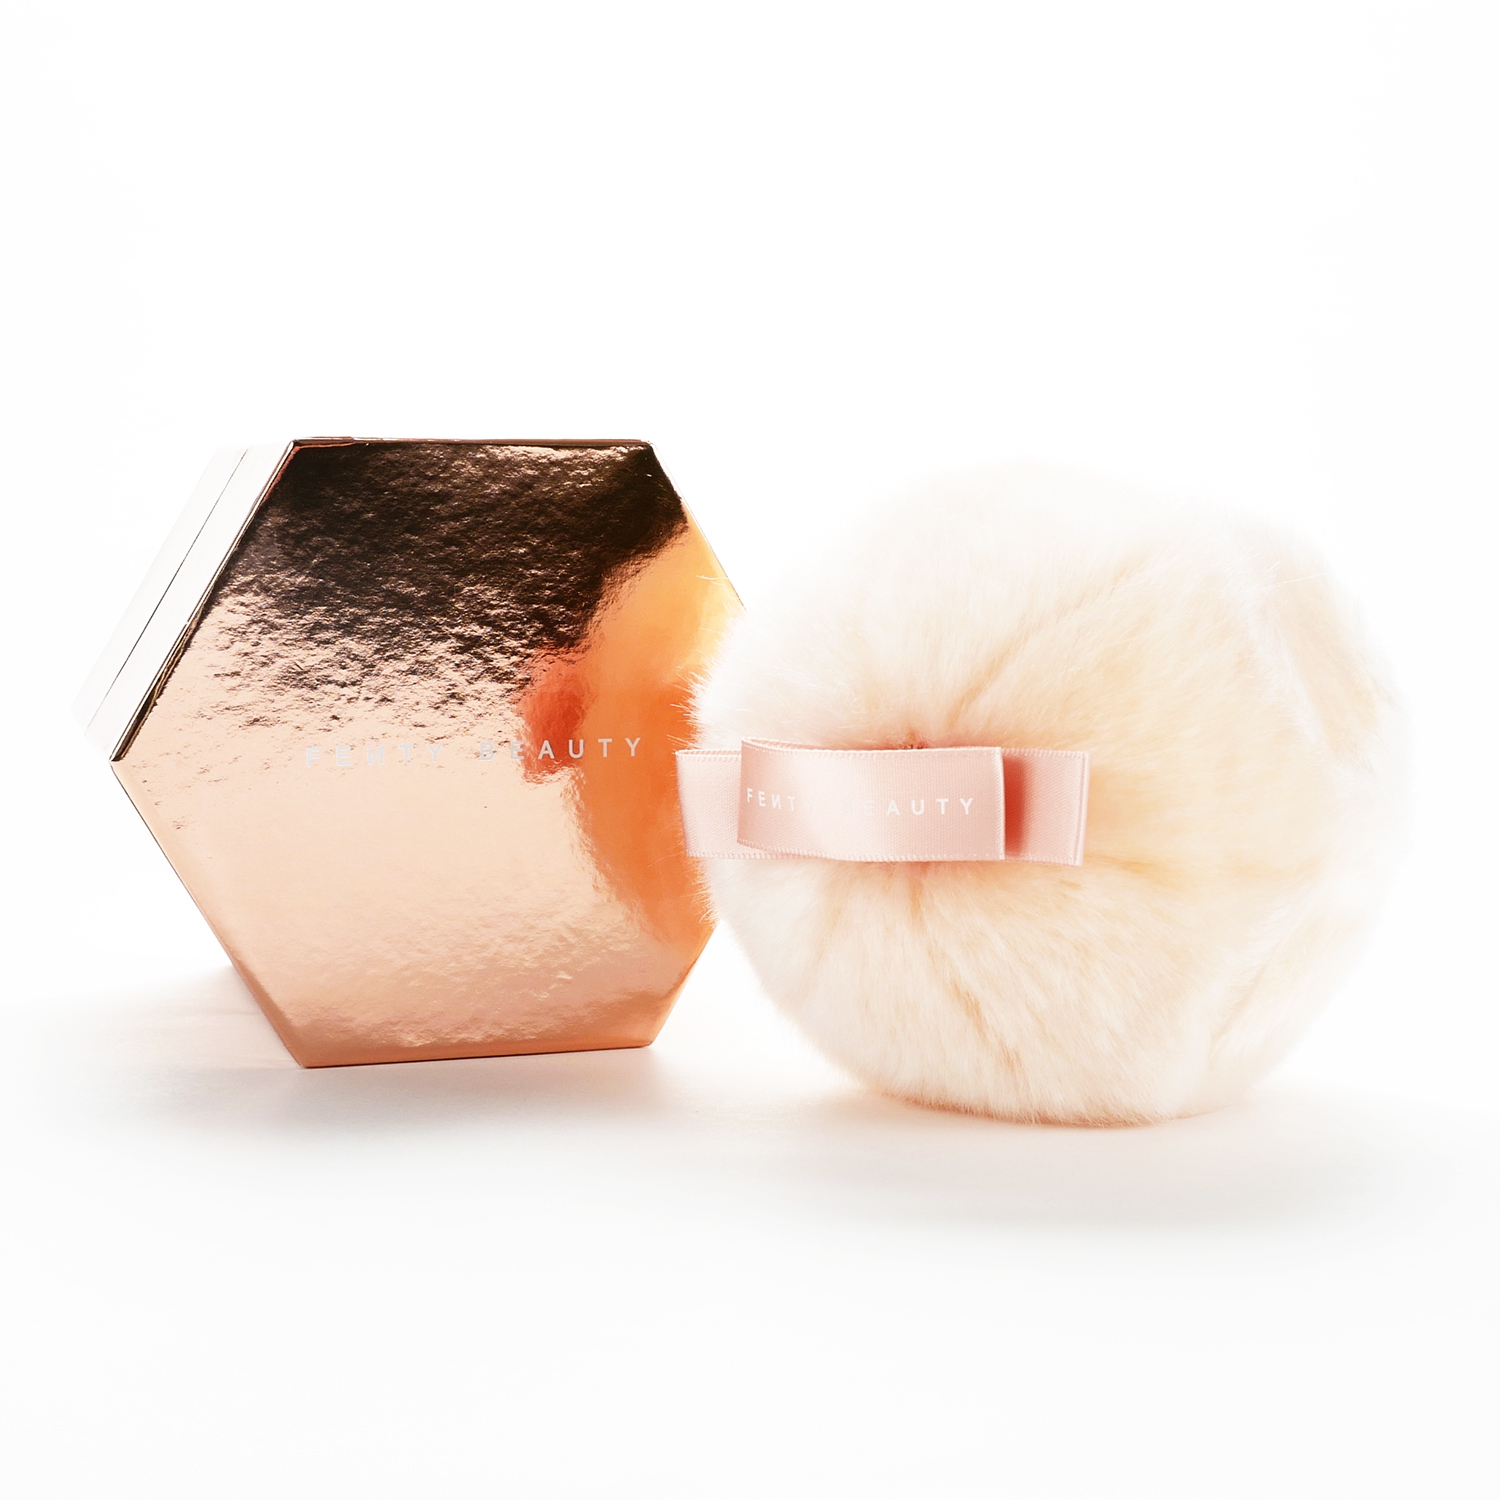 ec99d9888 The pom pom is really soft and a pretty peach color. You have to hit the  Fairy Bomb against your skin many times to initially bring out the  hyper-reflective ...